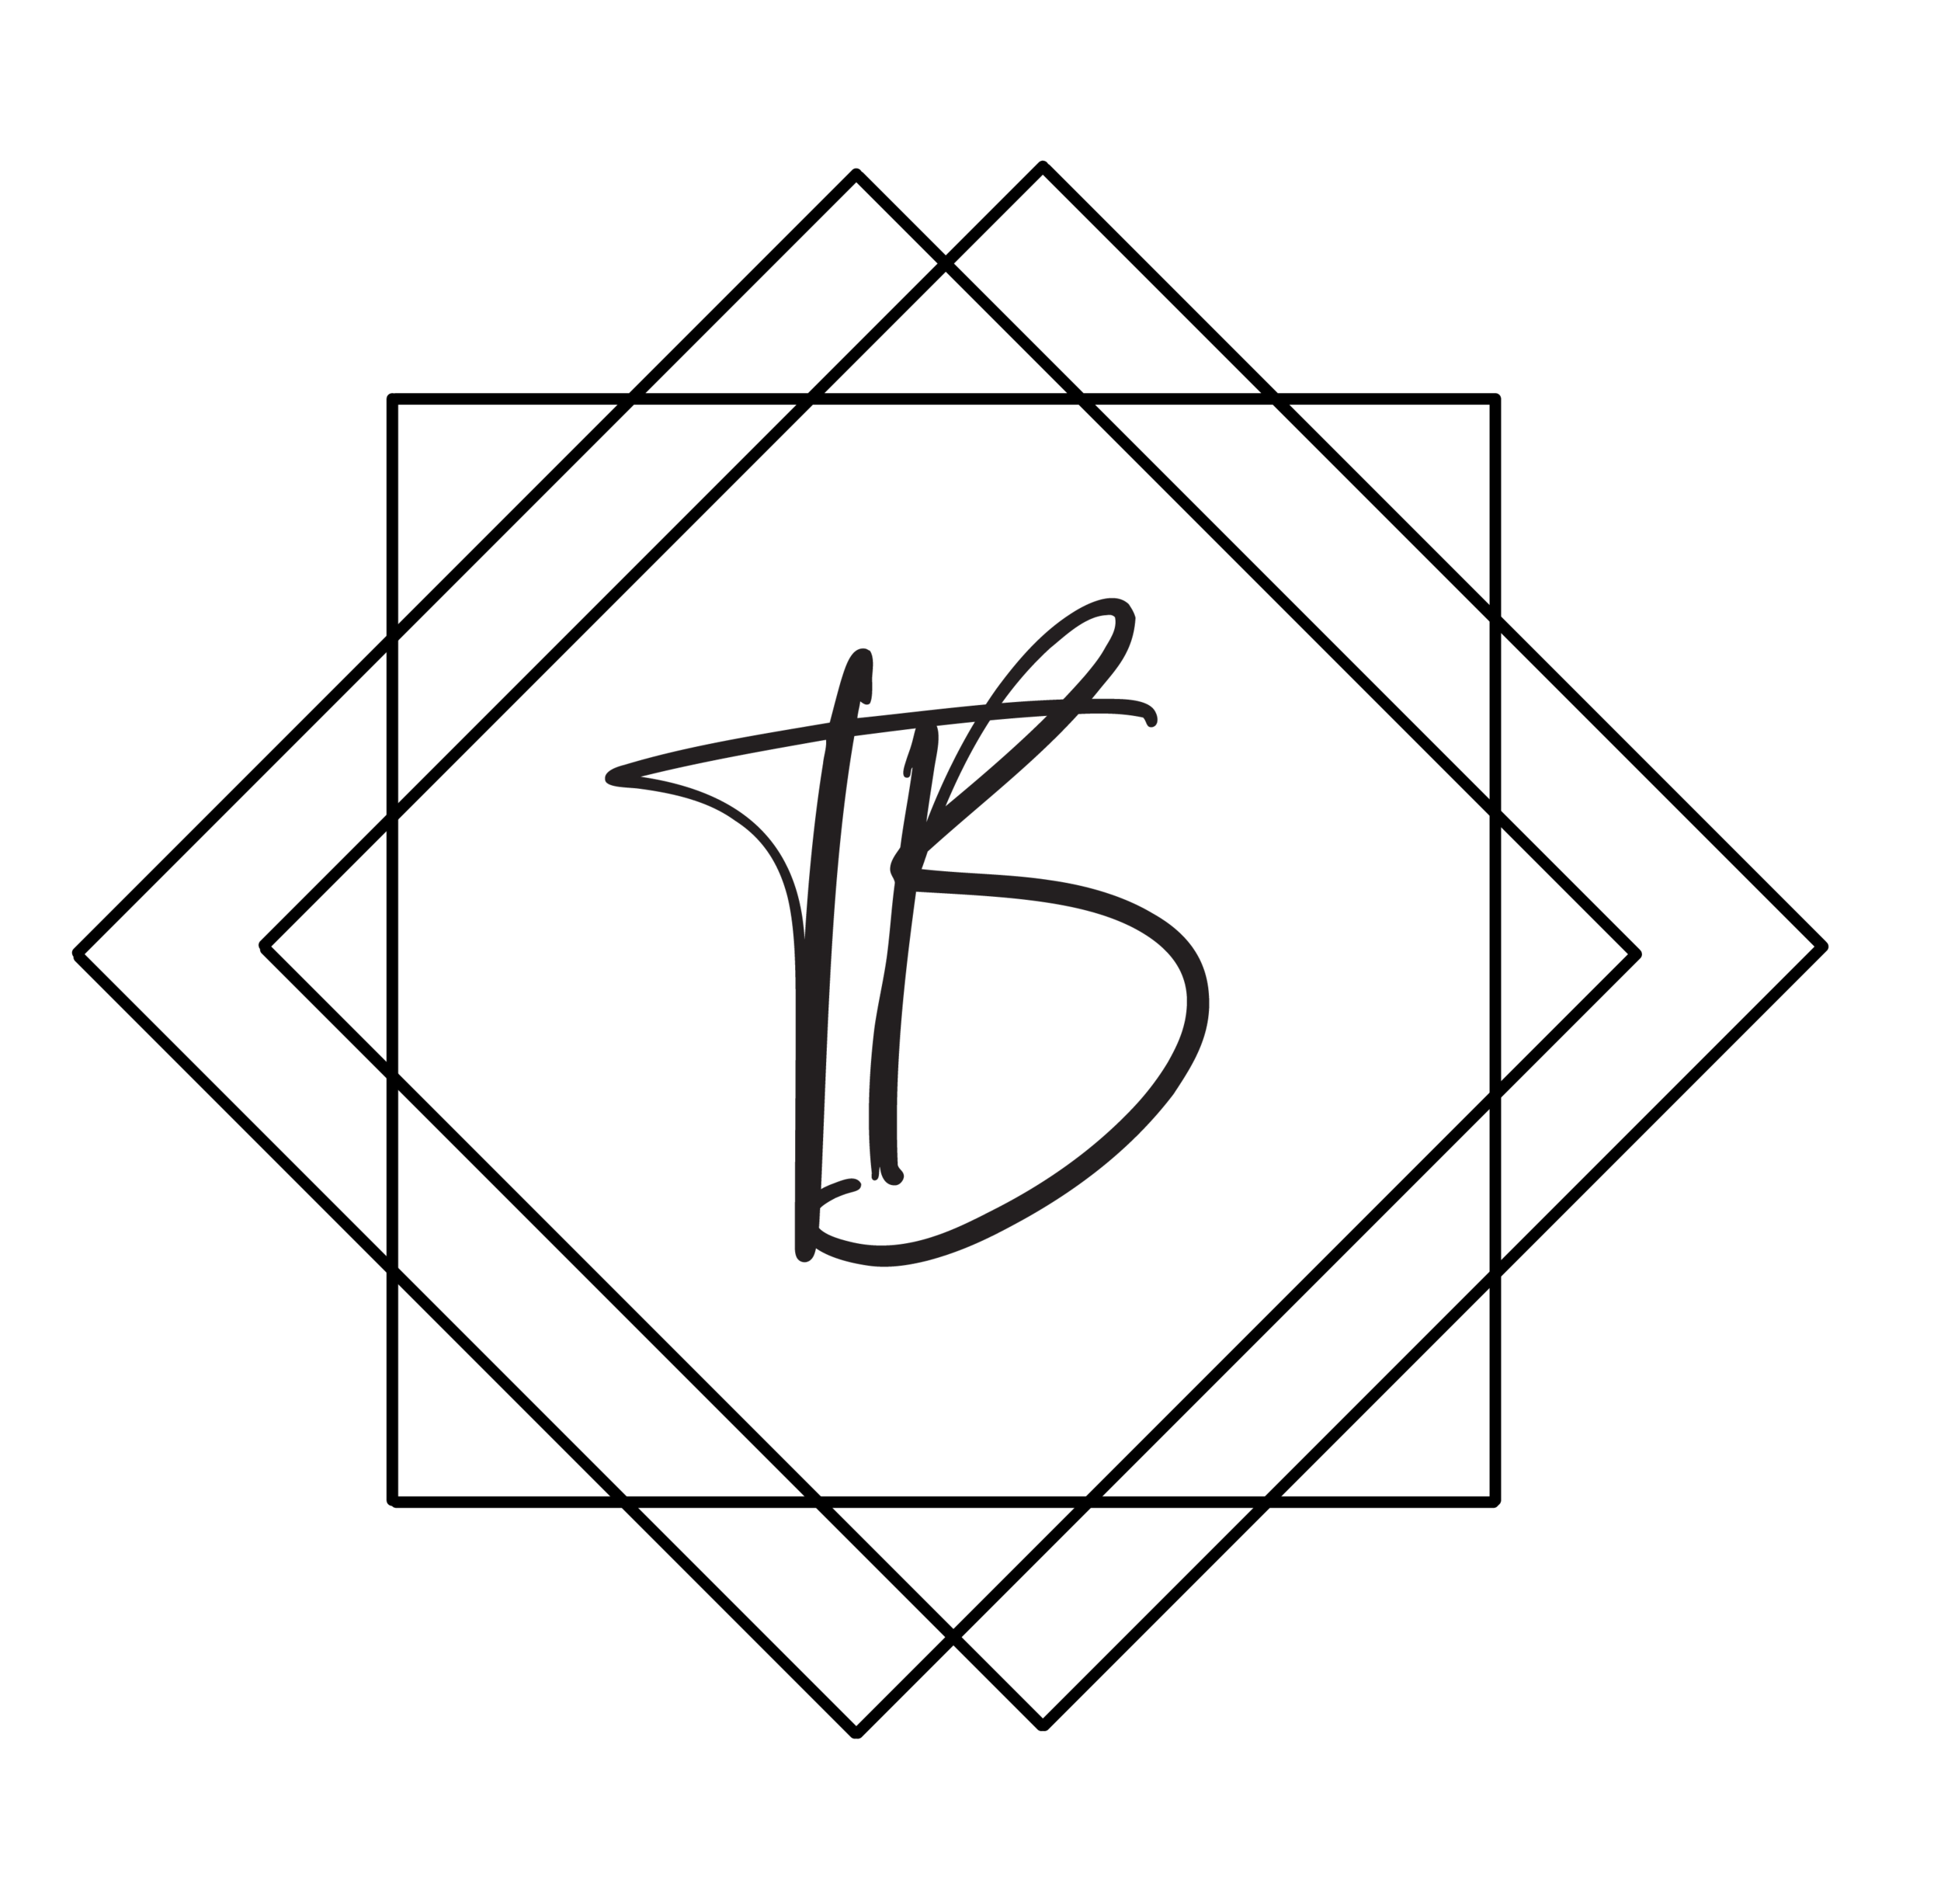 Trendblazer Studio_Icon-01.png